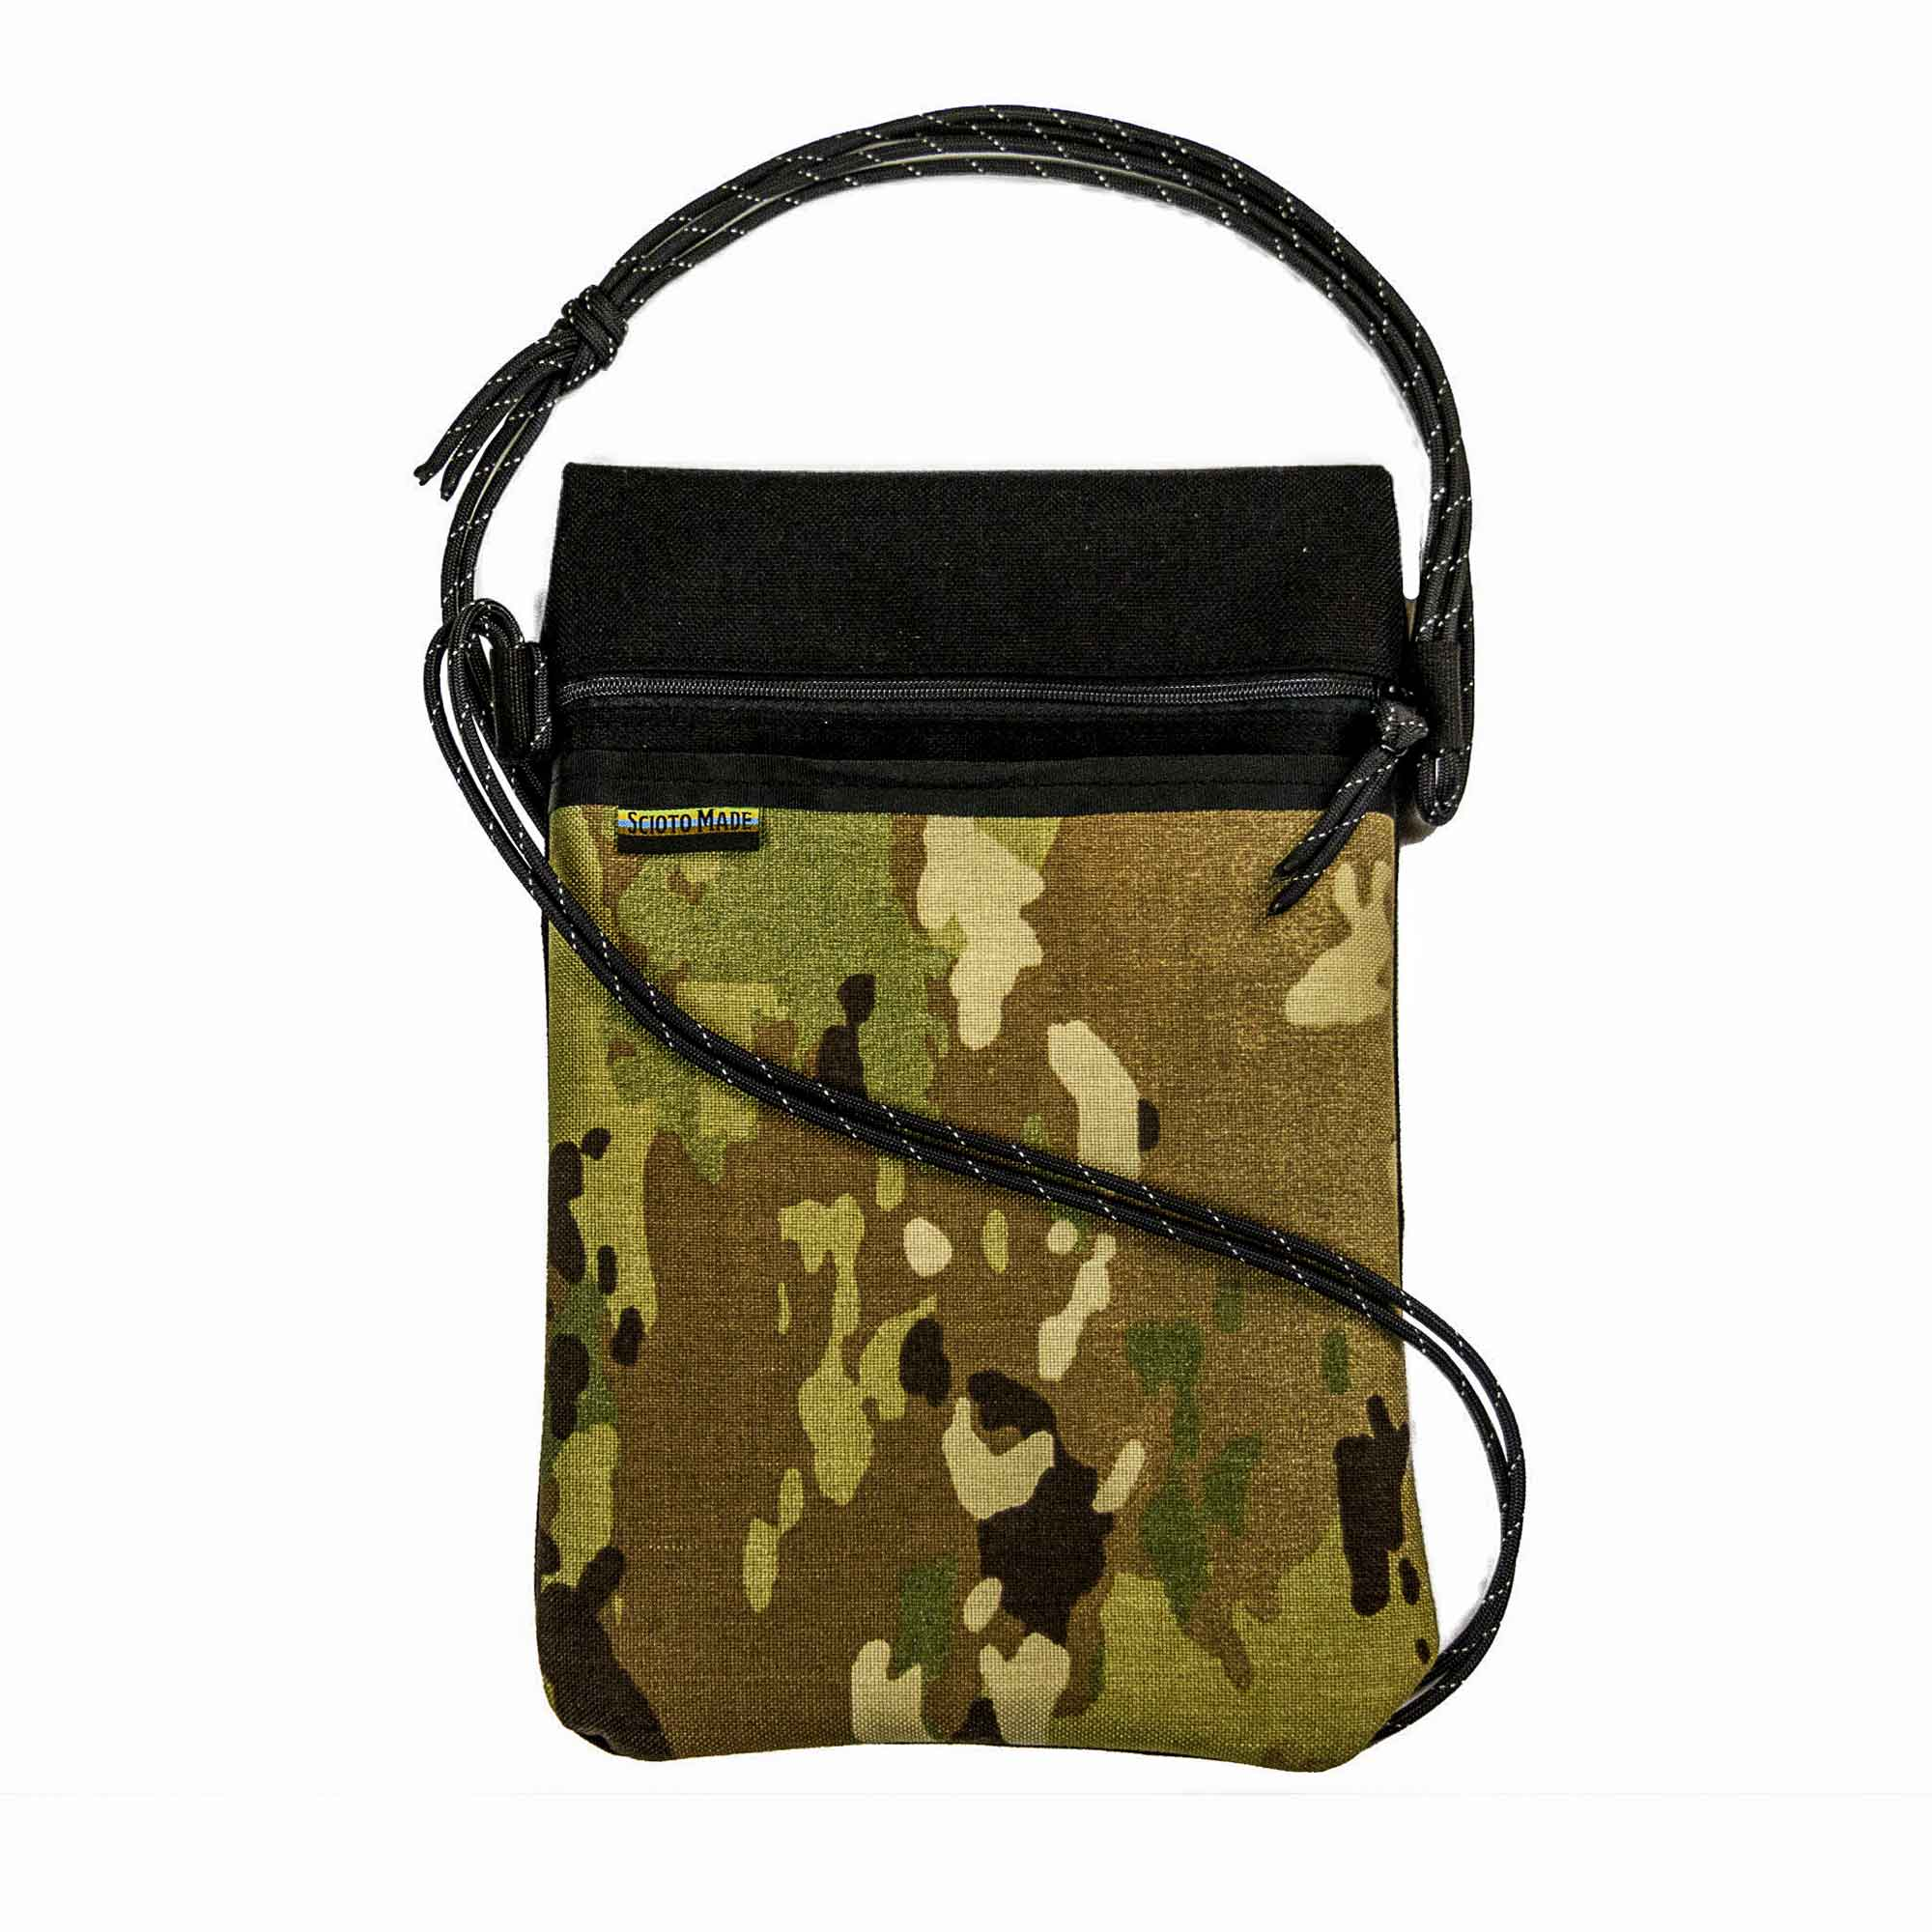 Scioto Made crossbody bag xover camo black front view 01